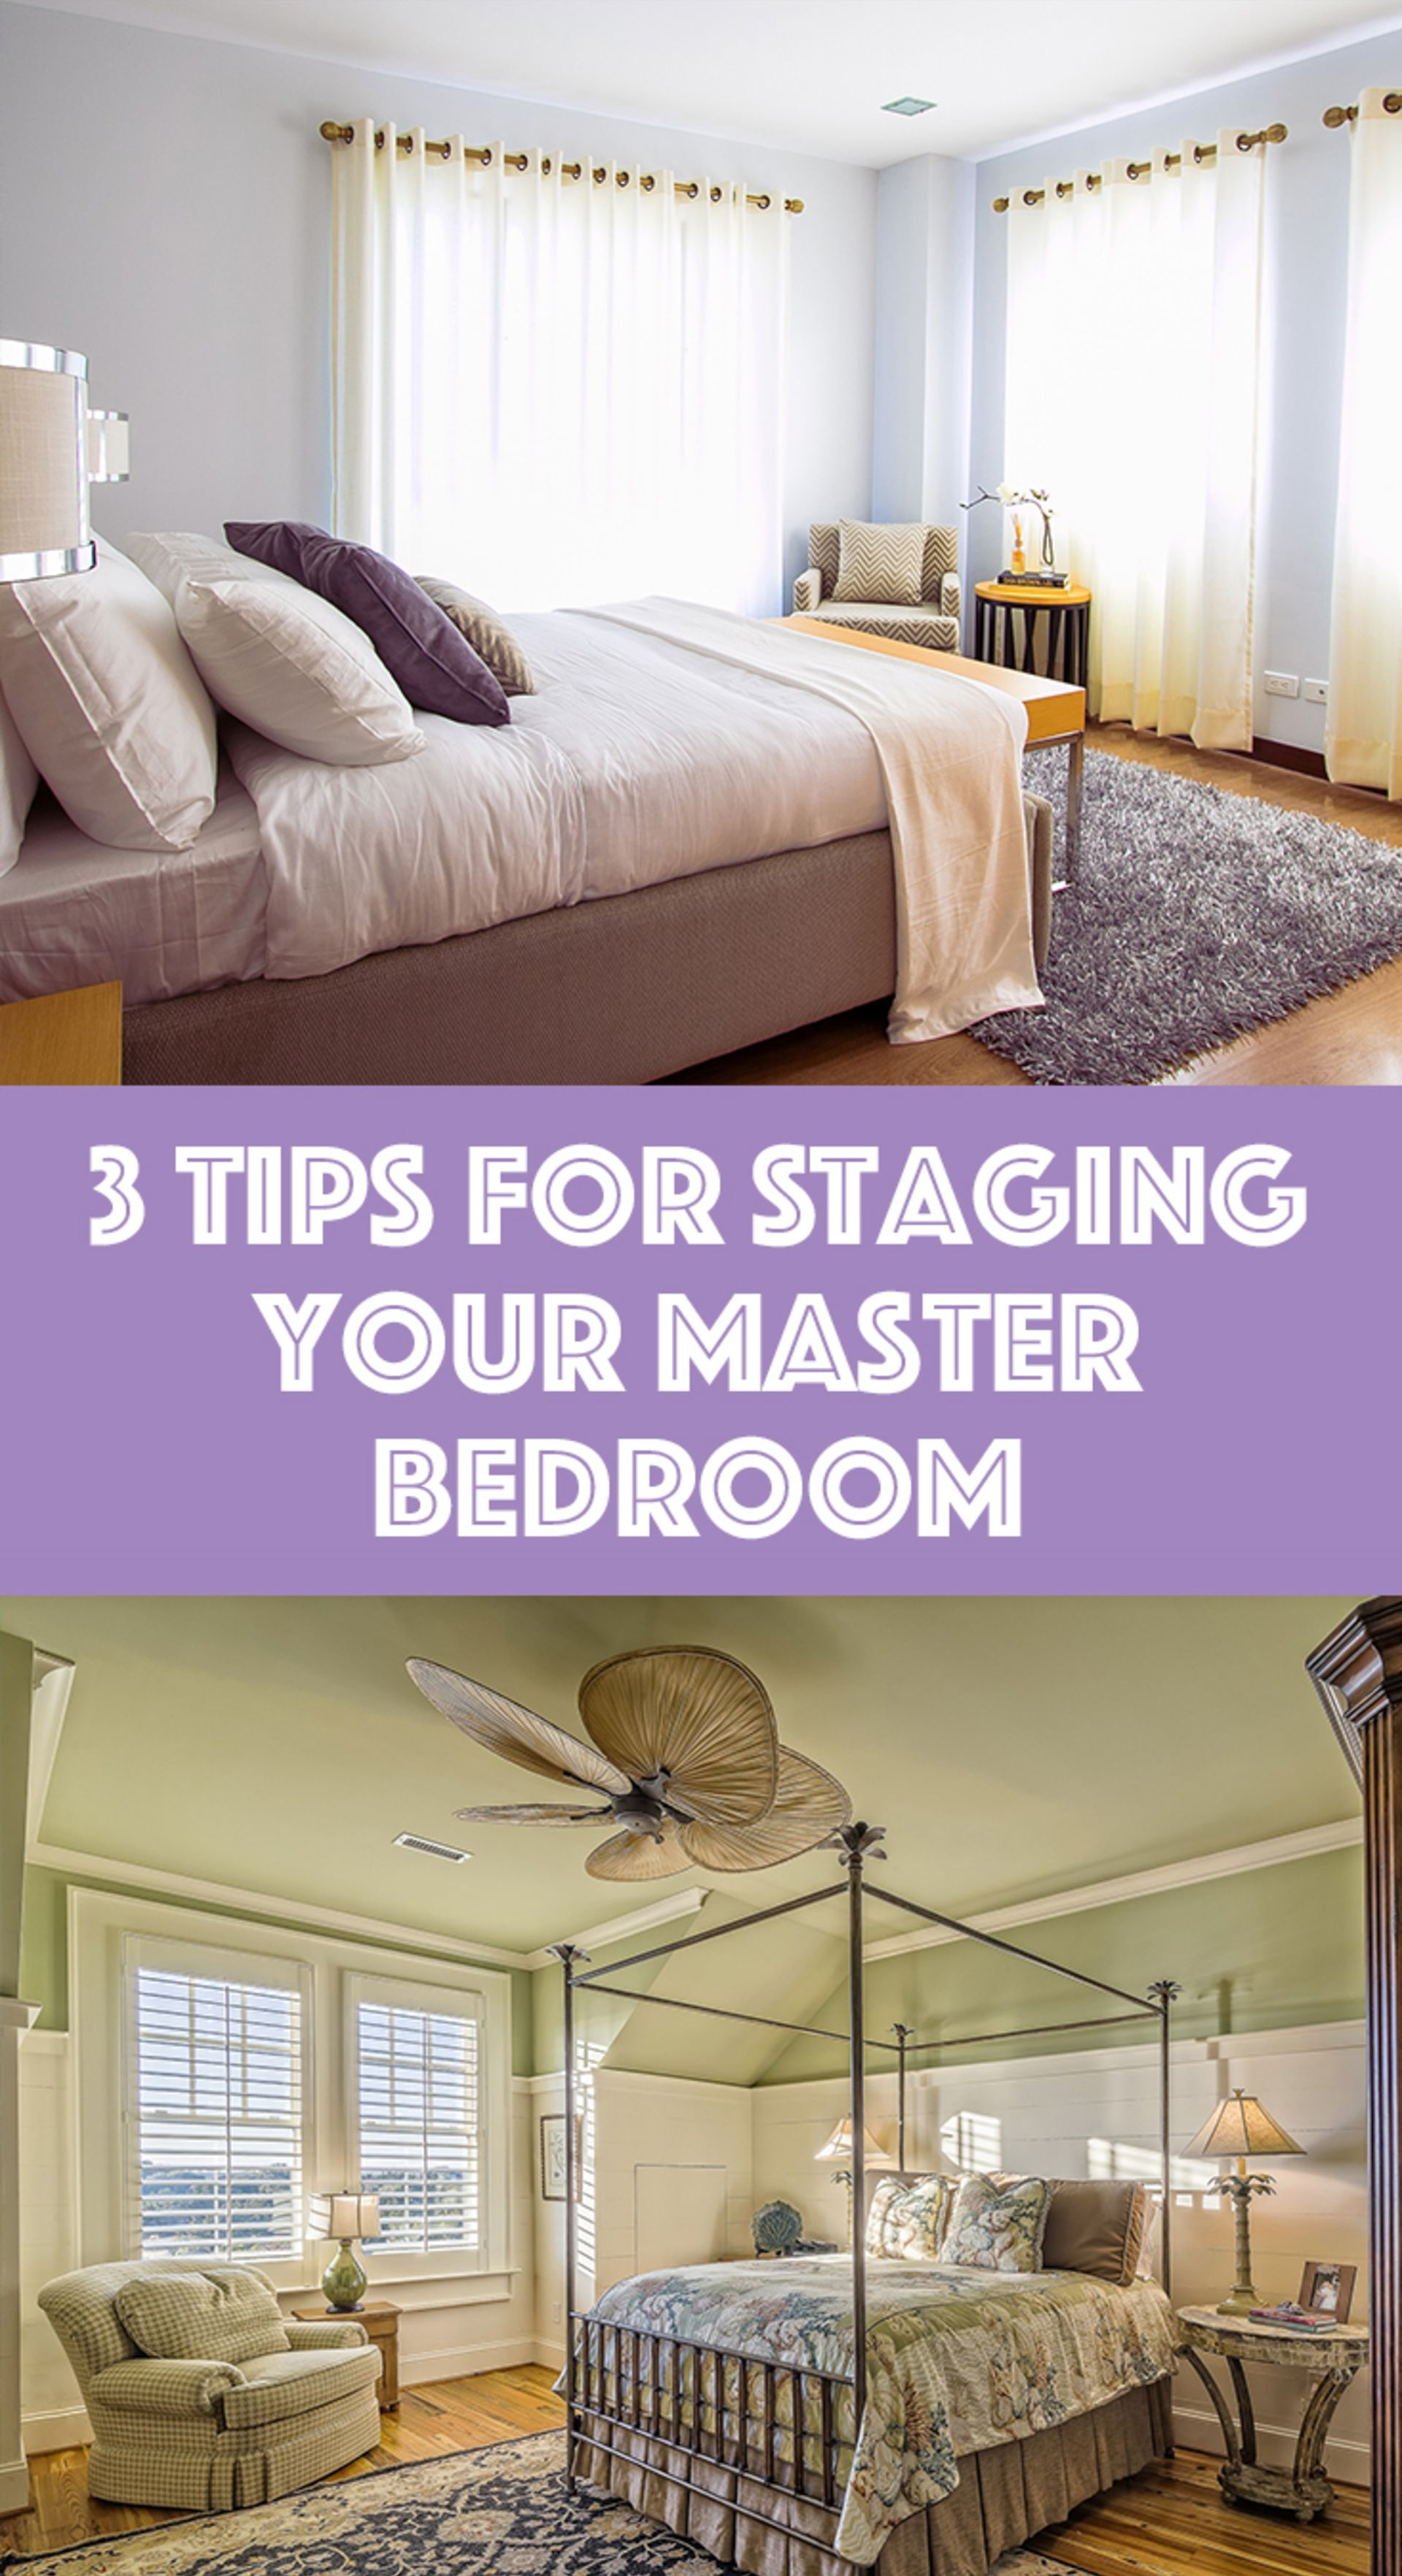 3 Tips for Staging Your Bedroom